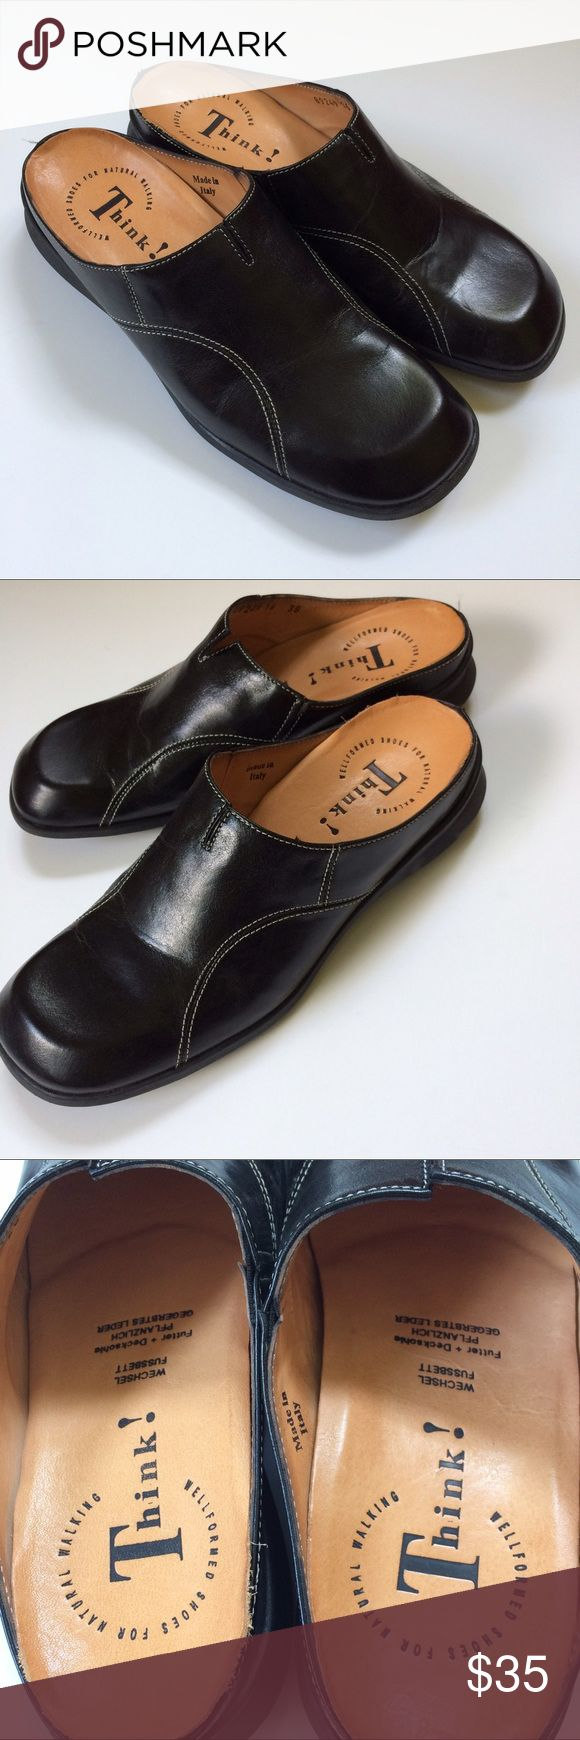 Think! Black Leather Mules Clogs Think! Black Leather Mules Clogs with white stitchings in excellent condition Think! Shoes Mules & Clogs